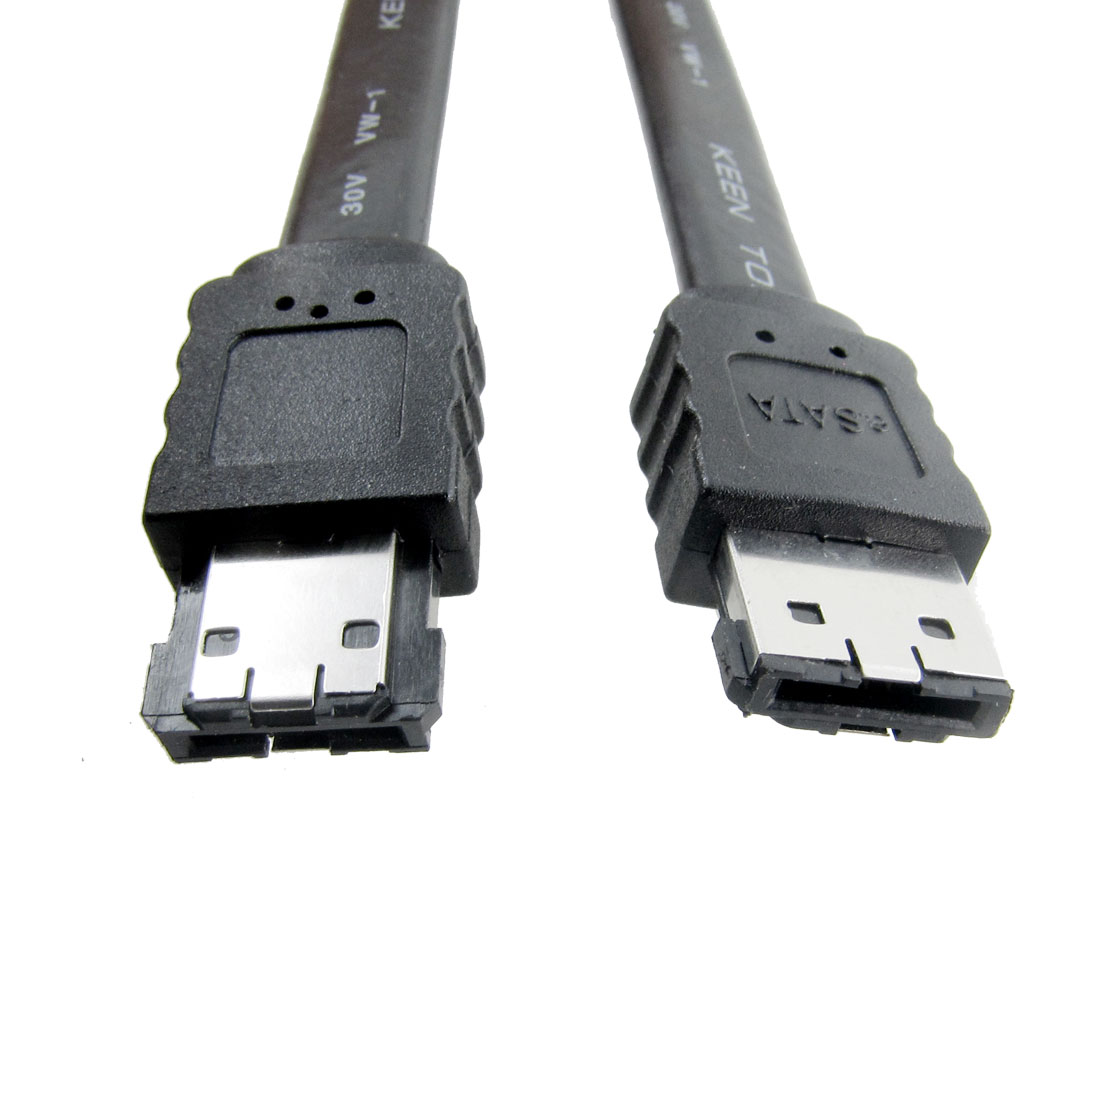 Black 2M 6.6Ft eSATA to eSATA 7-pin External Cable Cord